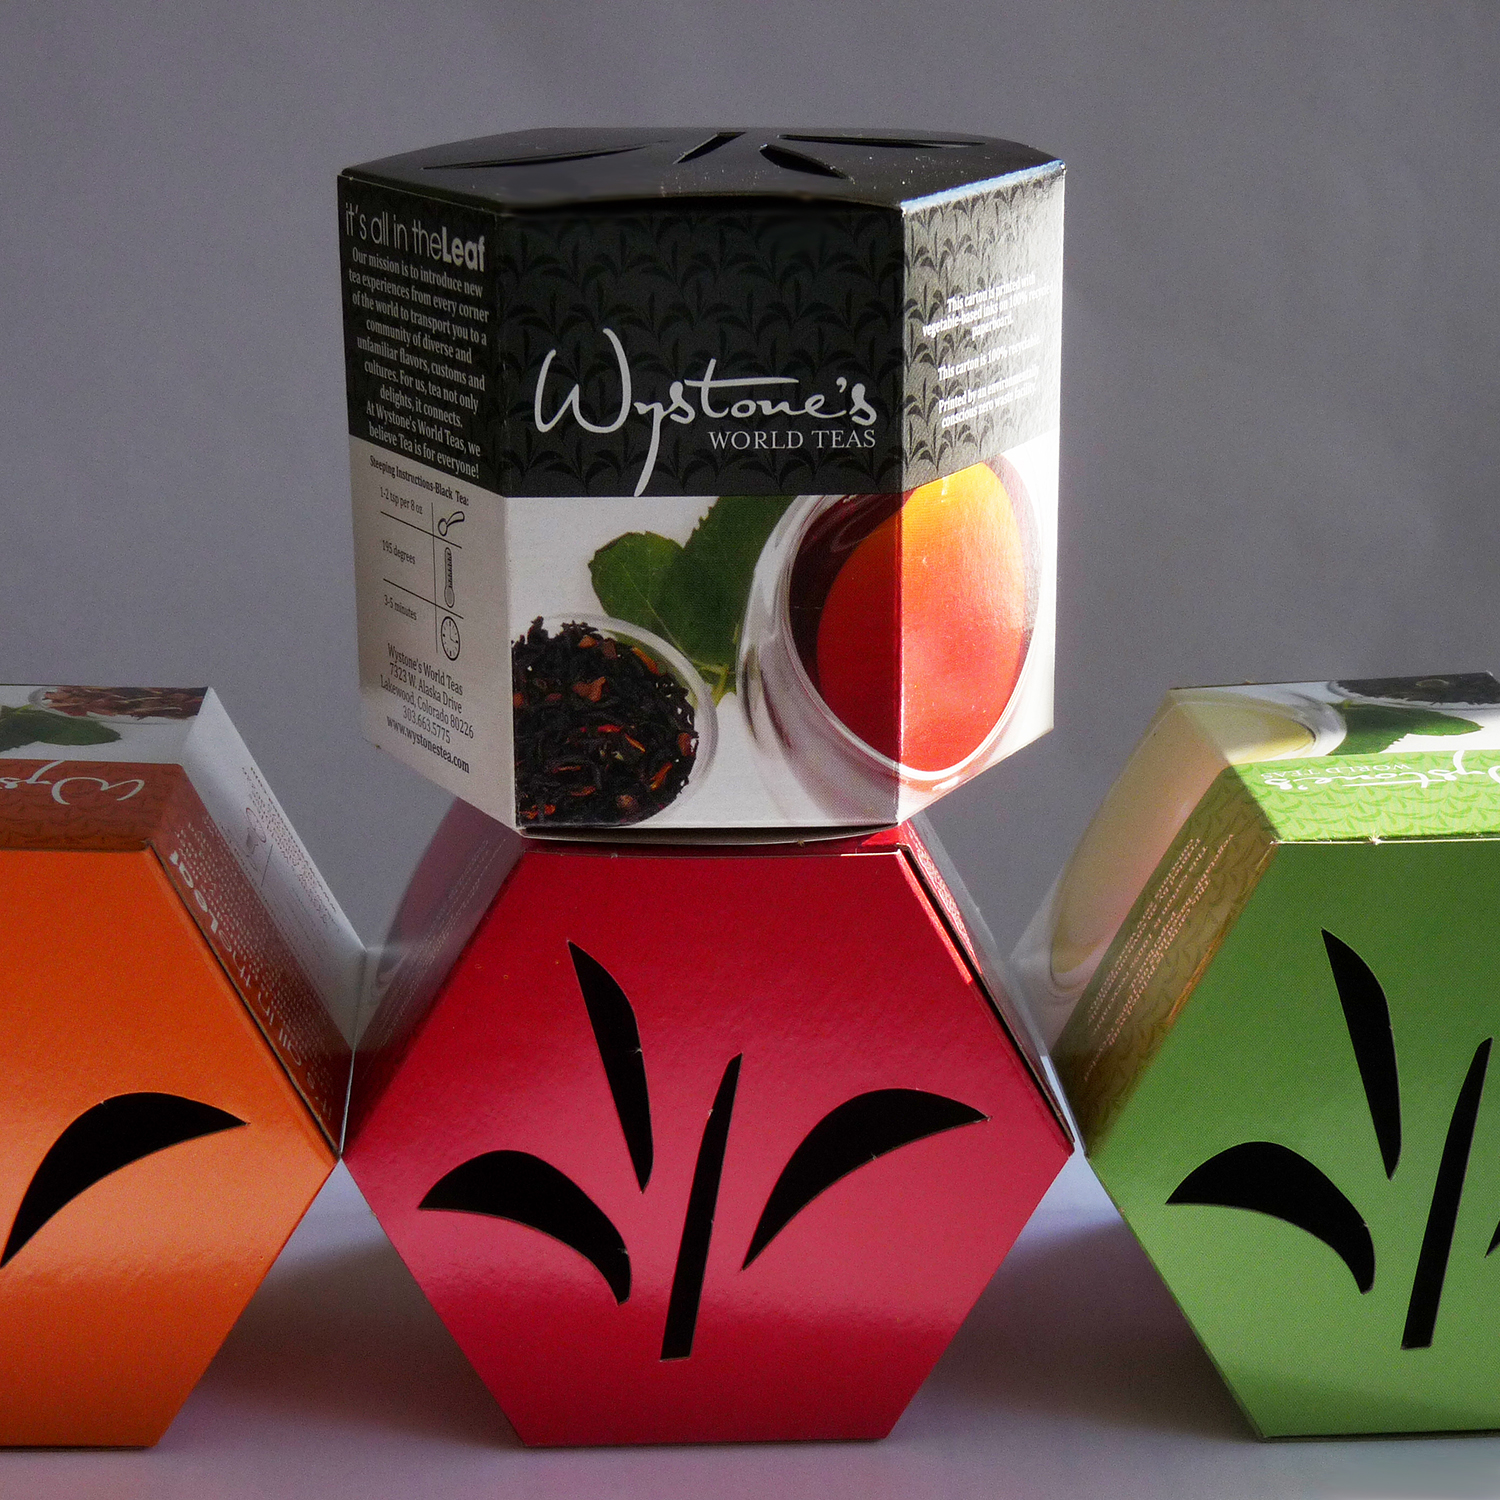 Wystone's Packaging